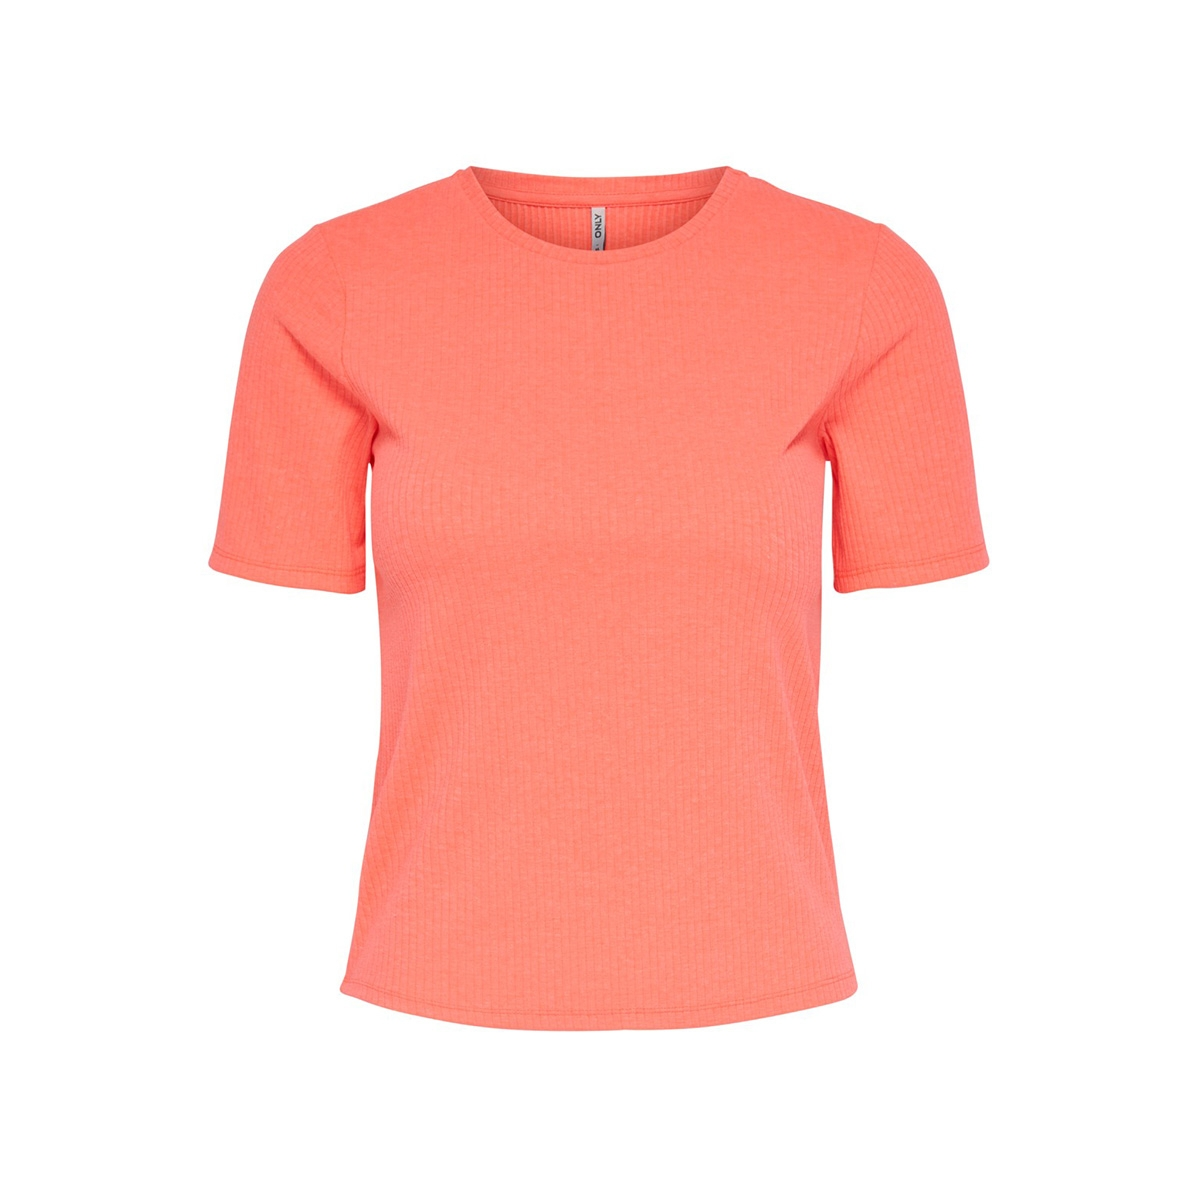 onlaija s/s top jrs 15195855 only t-shirt knockout pink